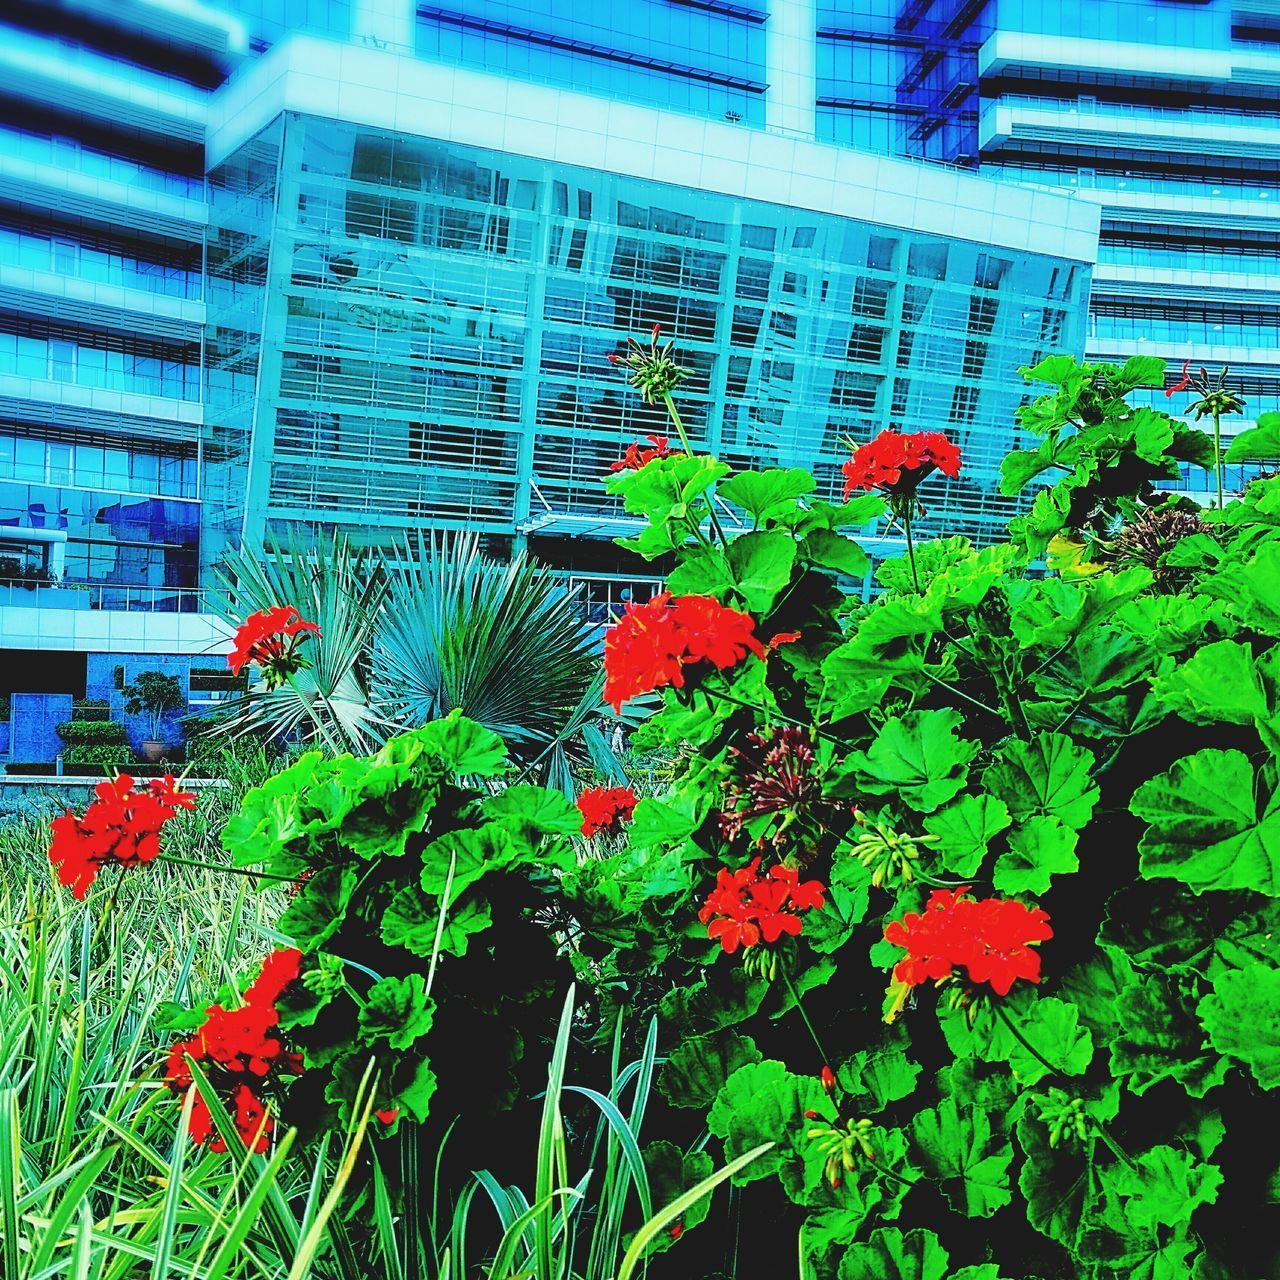 Outdoors Garden Flowers Beauty In Nature Garden Art Flower Nature Flower Head Office Garden Office View SEZ Hcl Garden Decor Garden Photography View From Below Nature Close-up Plant Freshness Hclcampus